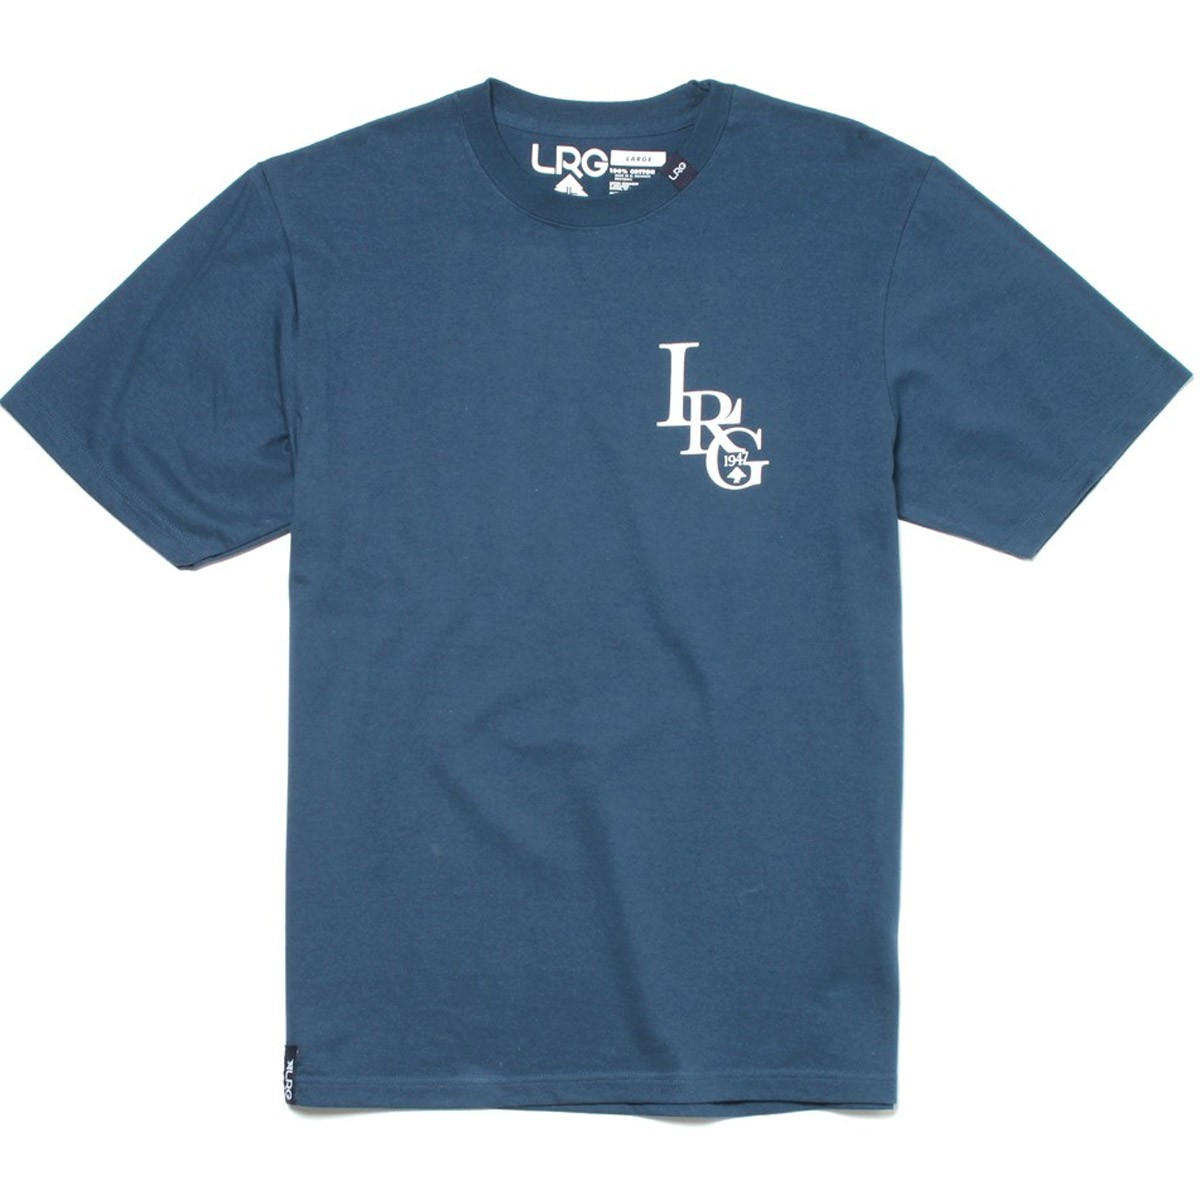 LRG Three Letter T-Shirt - Nautical Blue